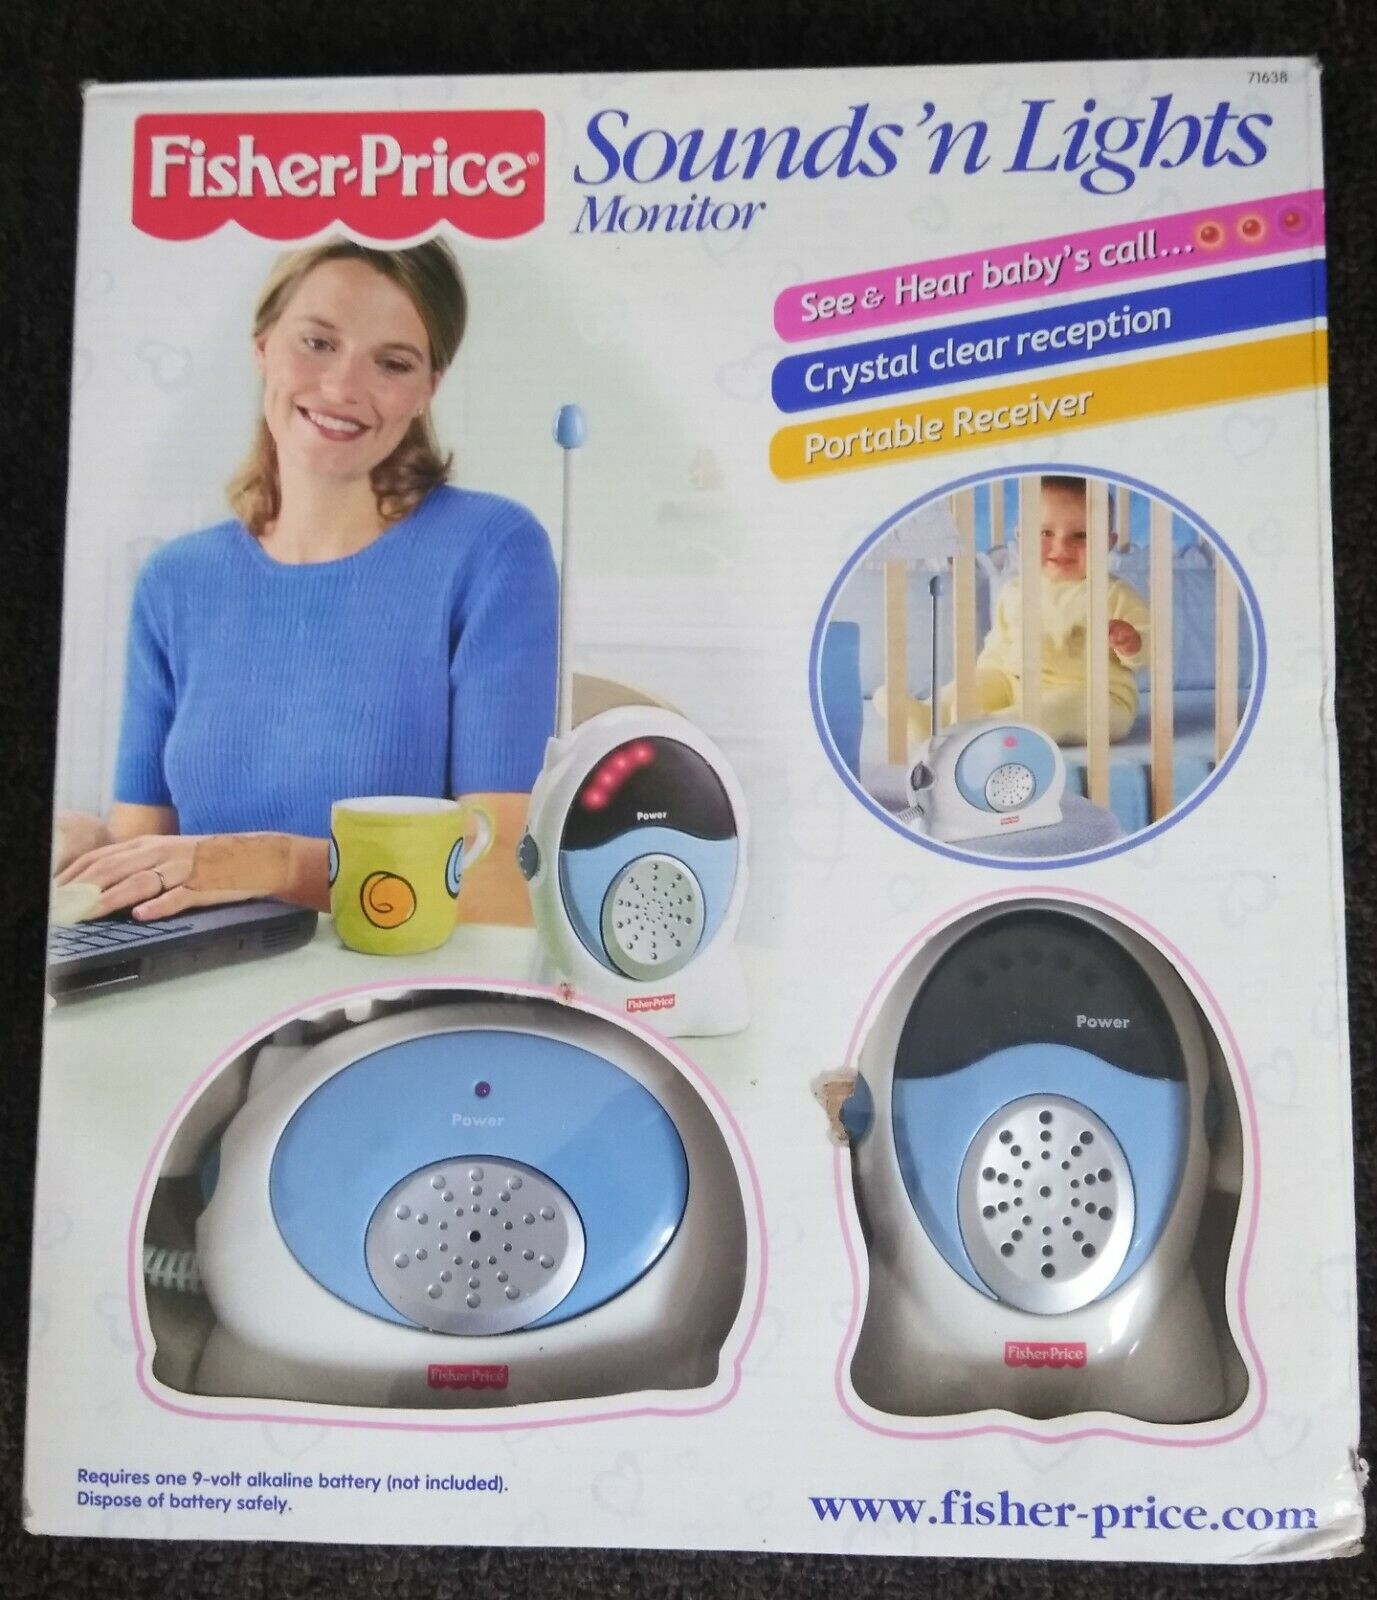 Fisher Price Sounds'n Lights Baby Monitor Receiver Handheld